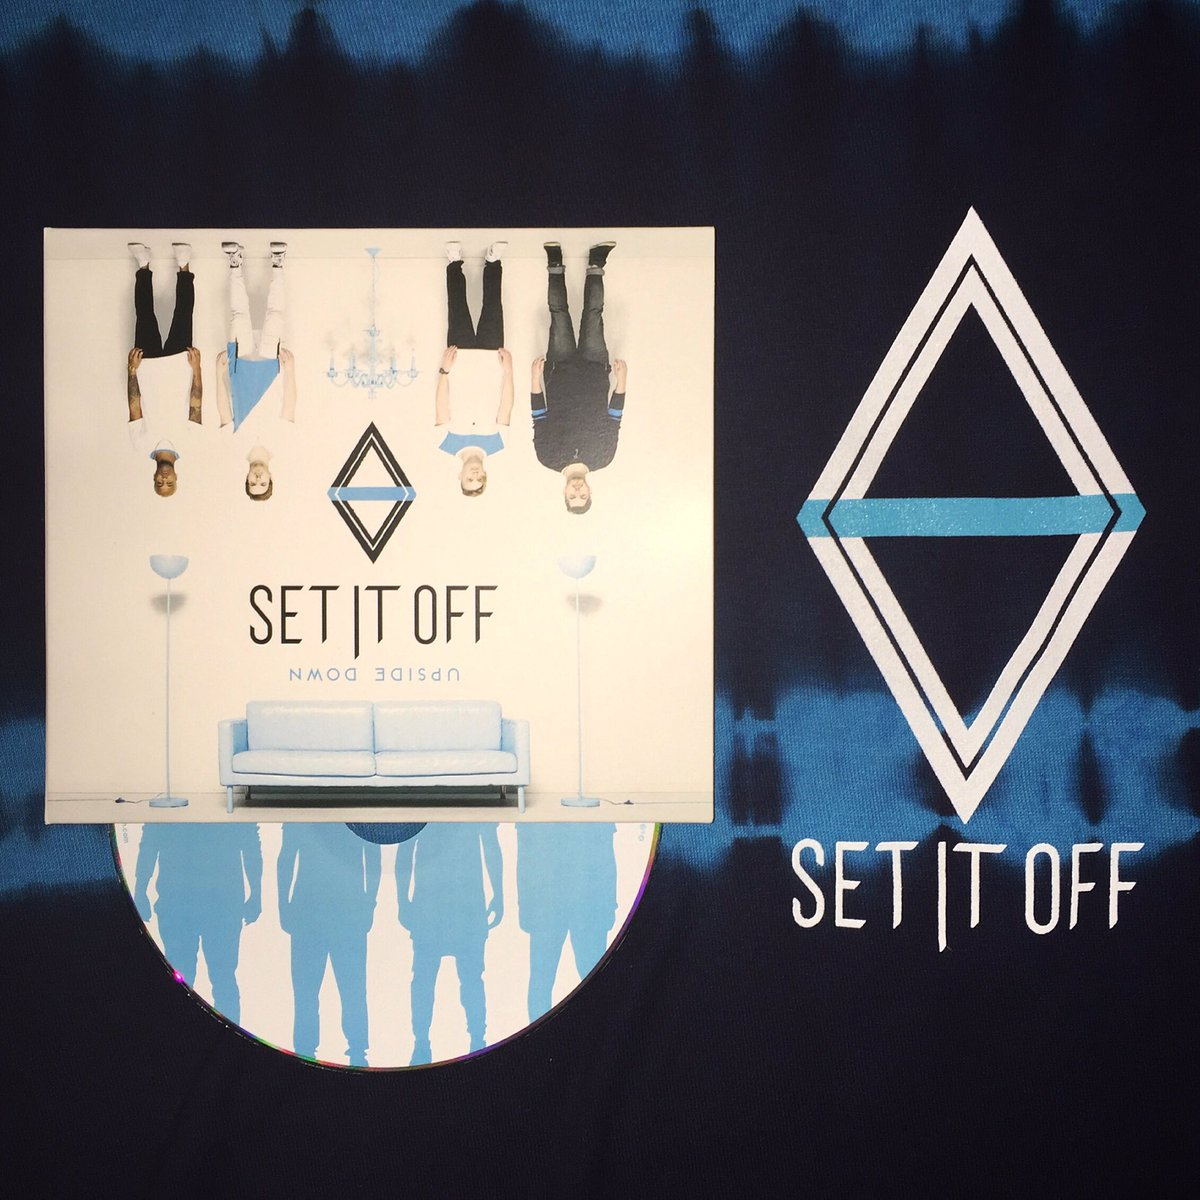 Don't mind me, I'm just waiting for @SetItOff to tour the UK with Upside Down